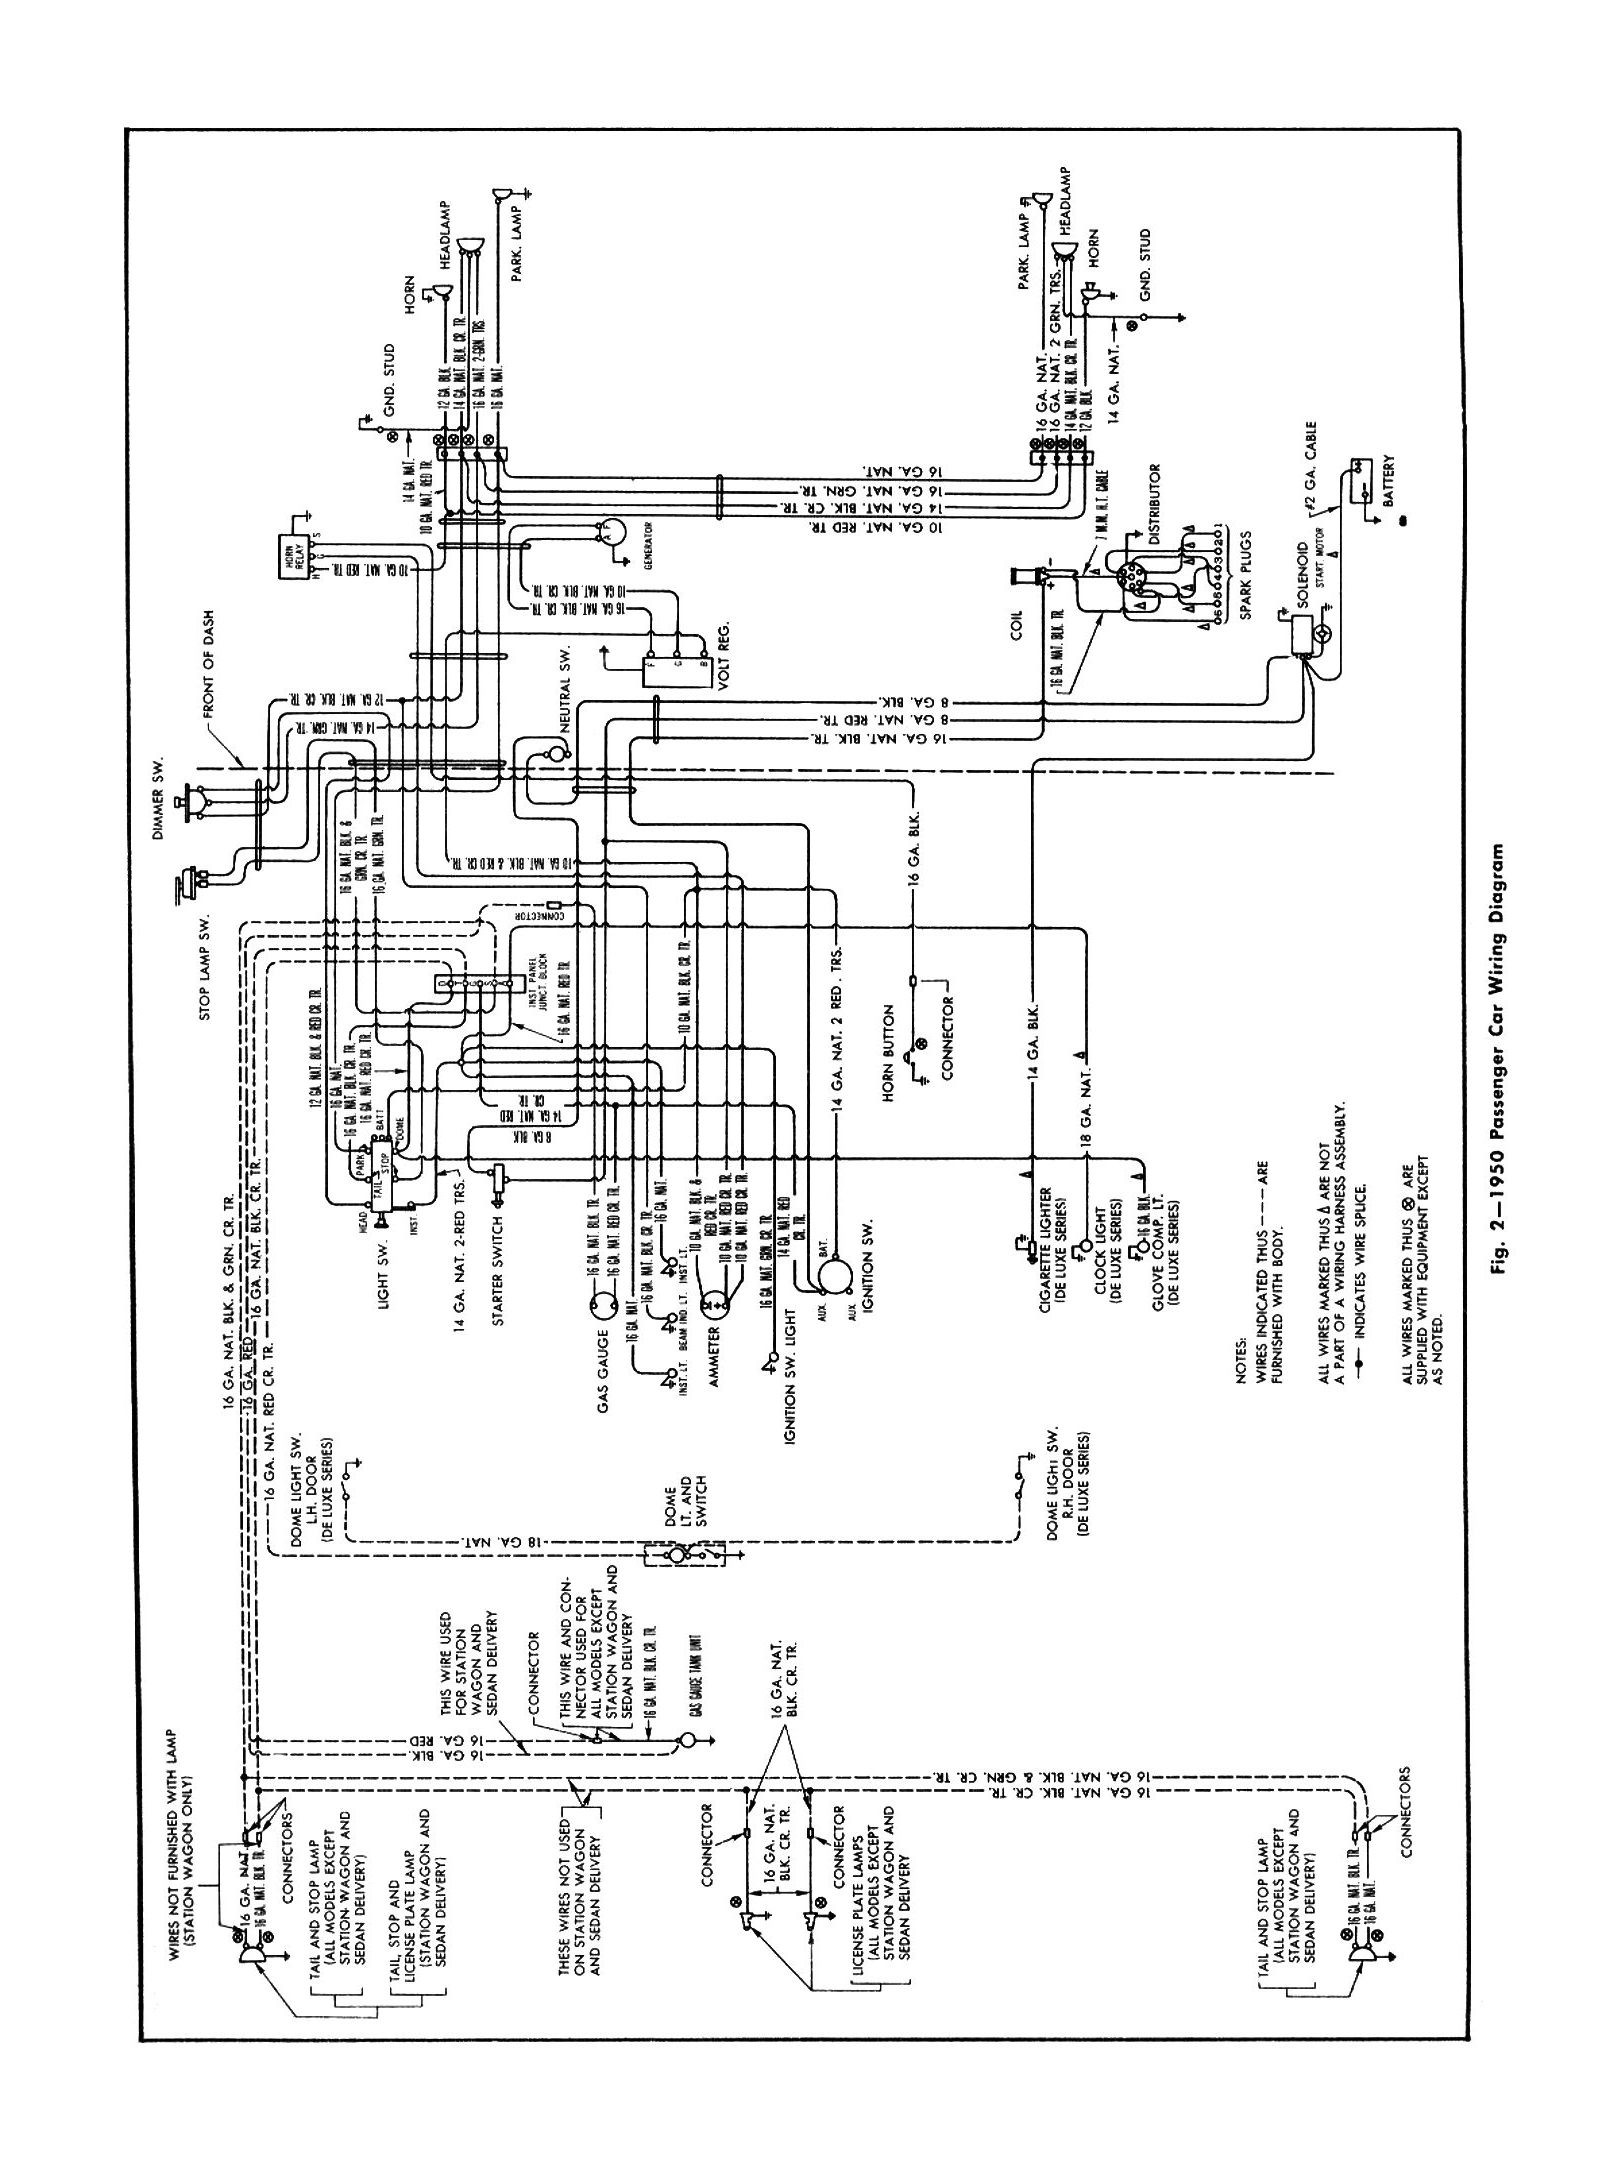 50car chevy wiring diagrams wiring diagram 53 chevy truck at edmiracle.co